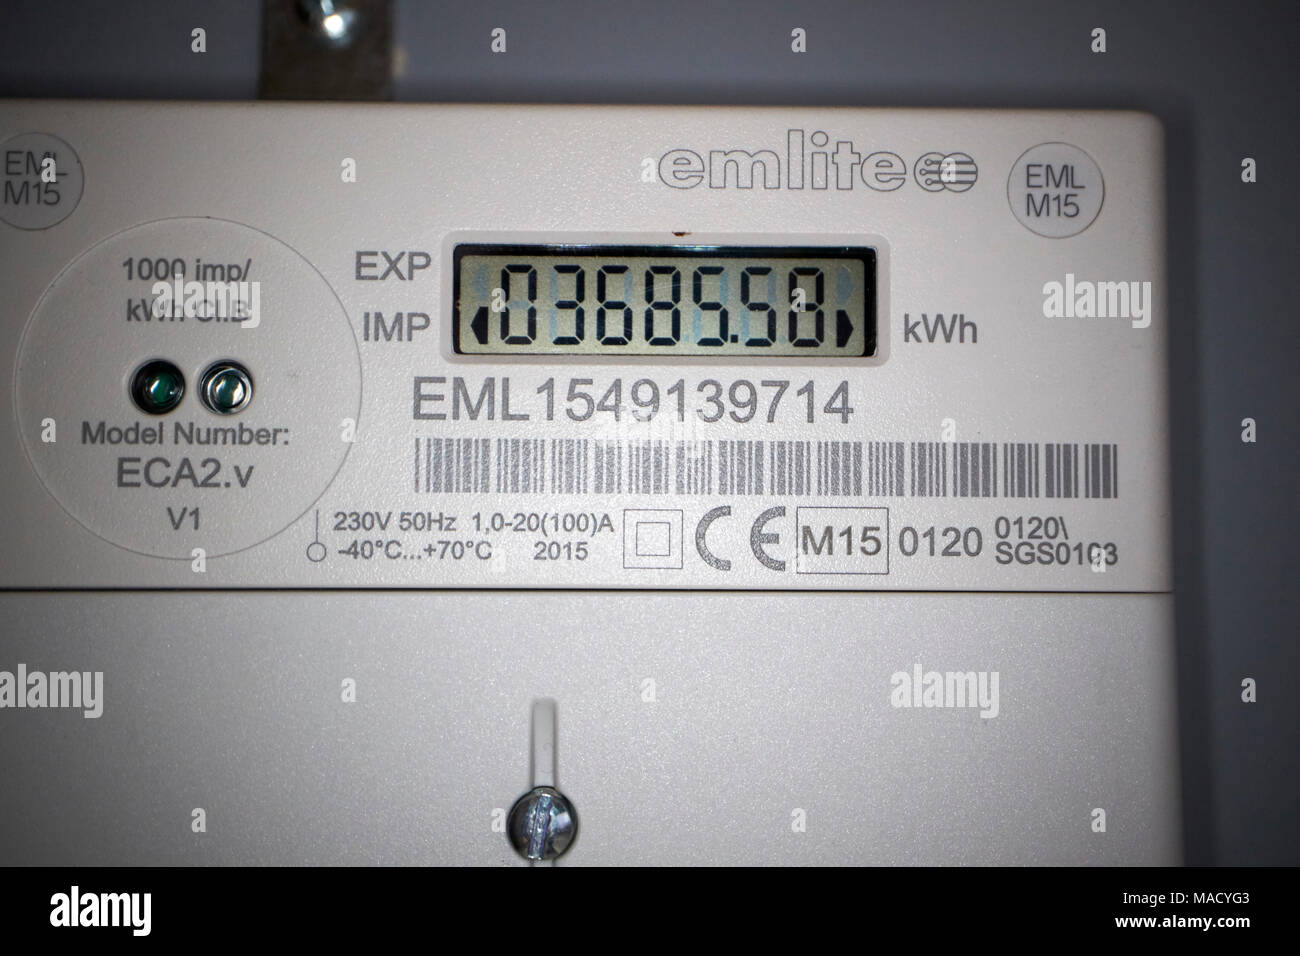 solar pv electricity generation meter used for rocs payments - Stock Image